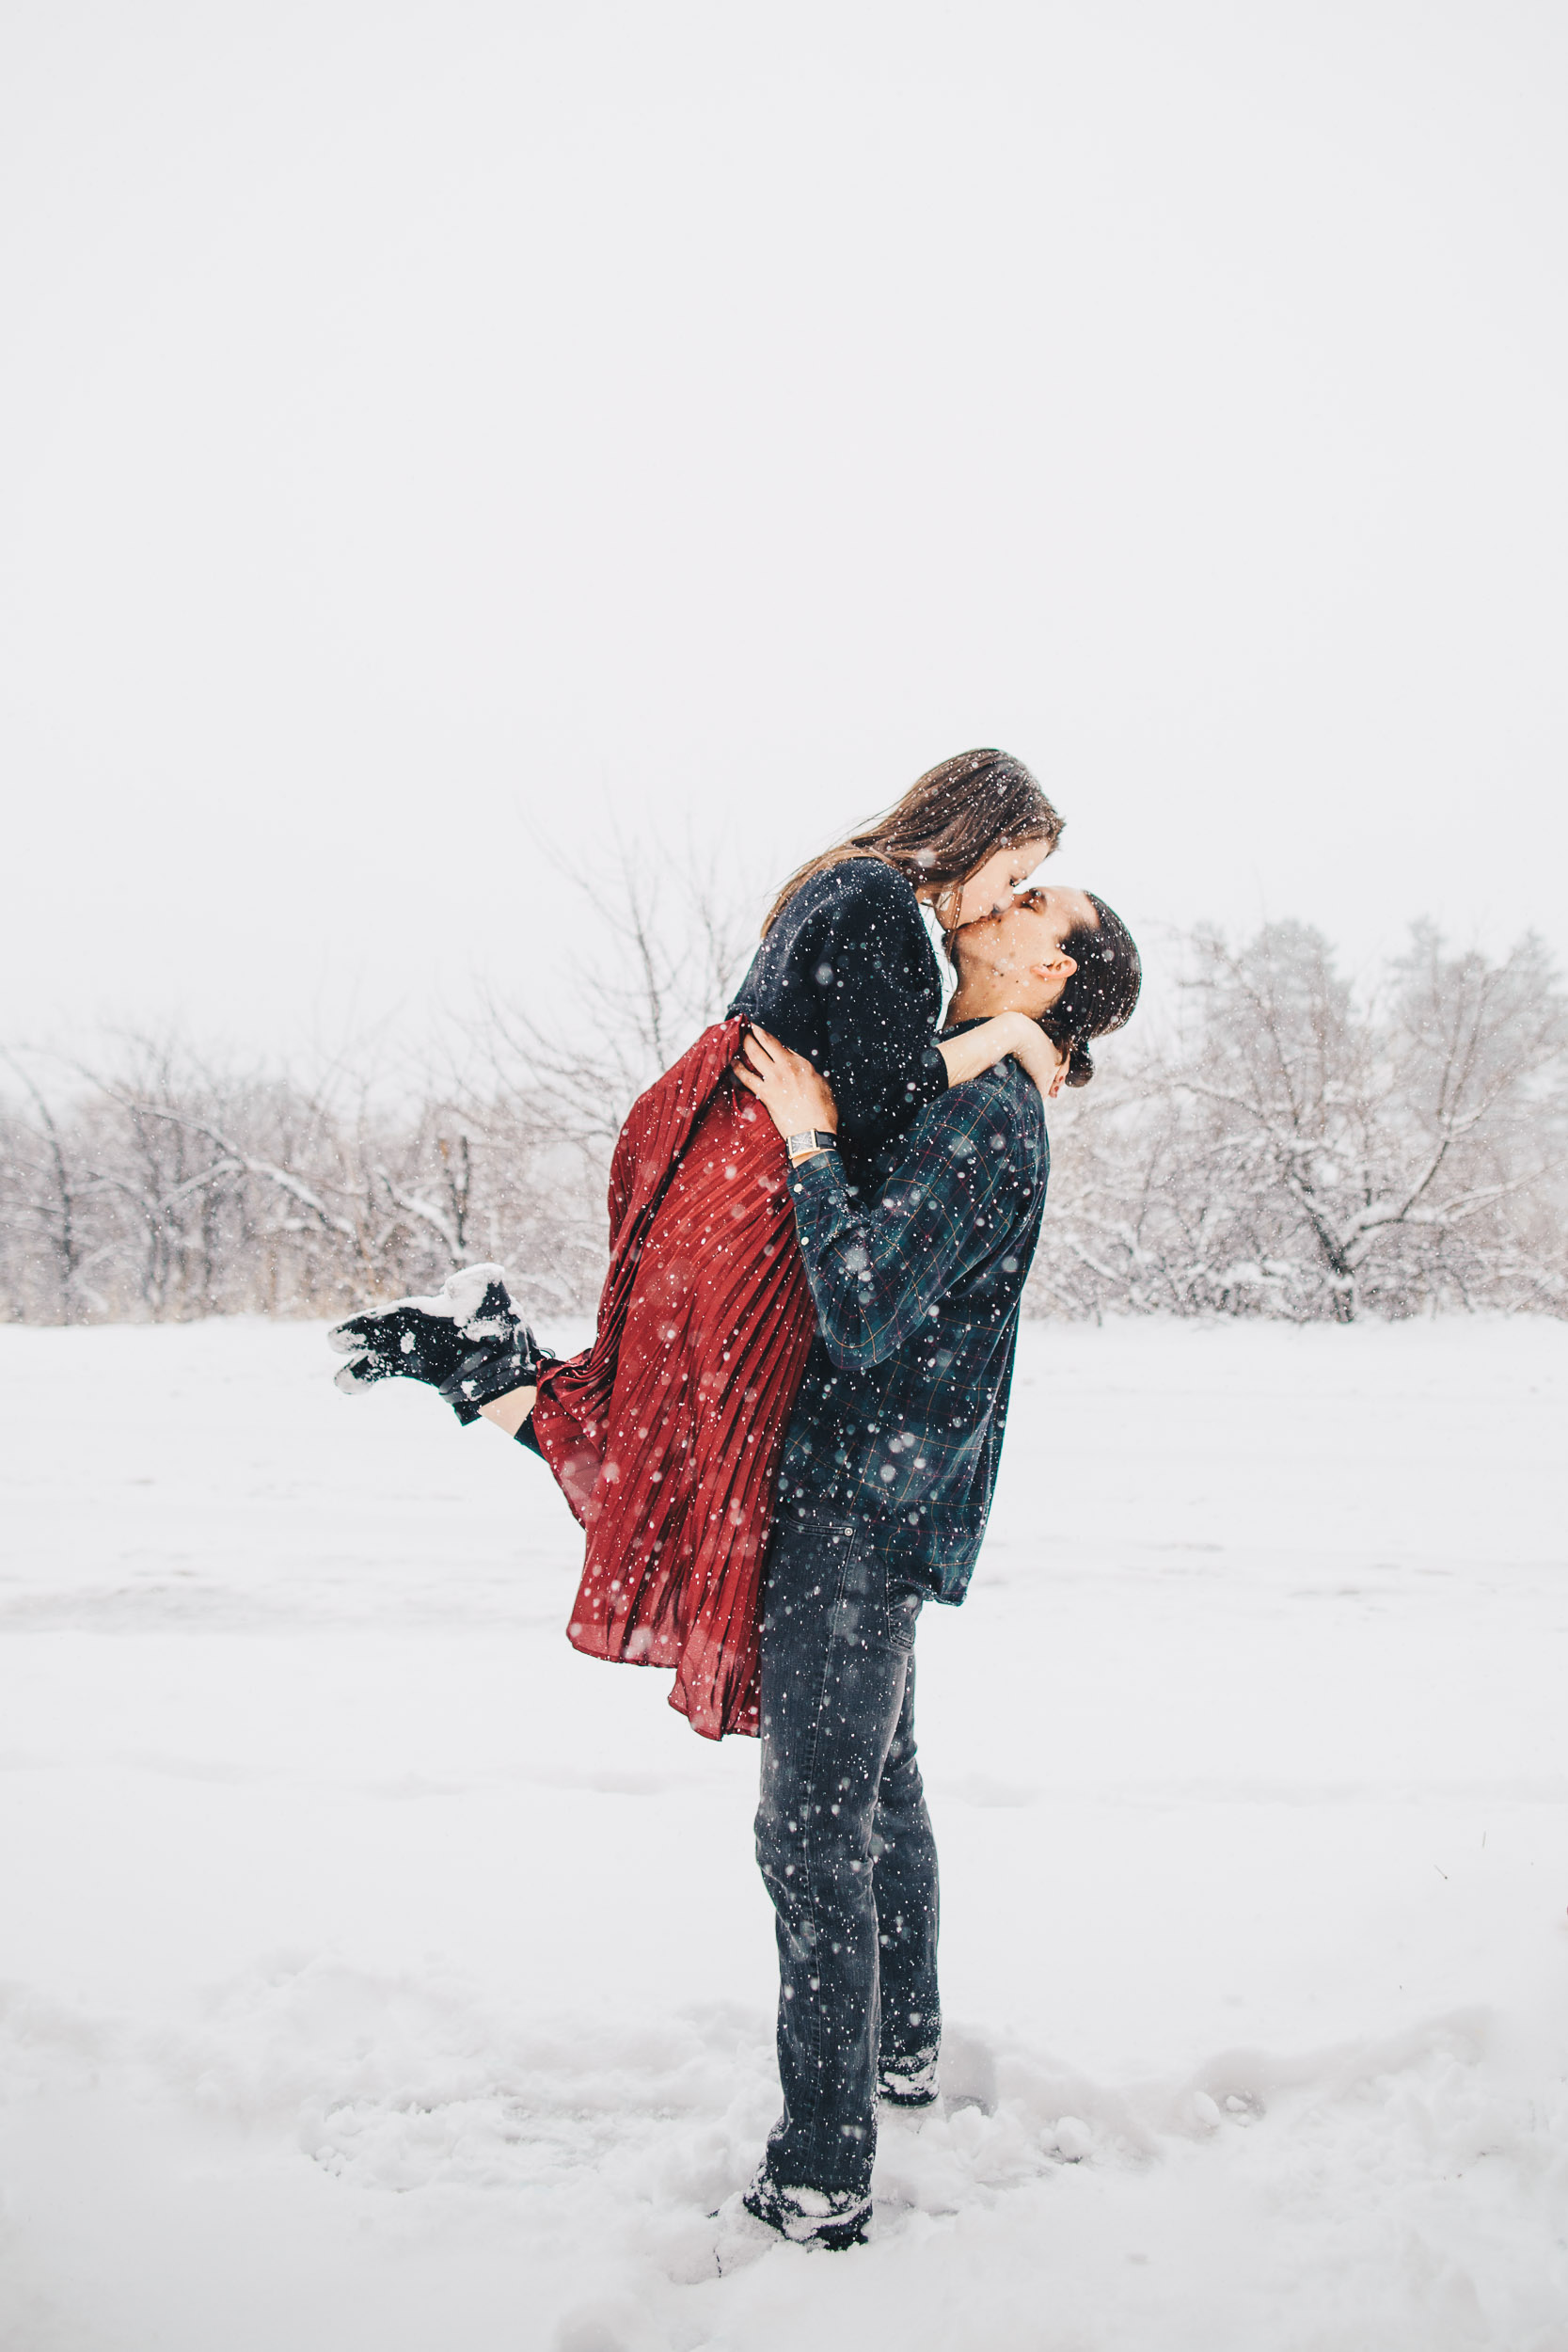 Blog-Dani and Kamran 1.21.2018-15.jpg